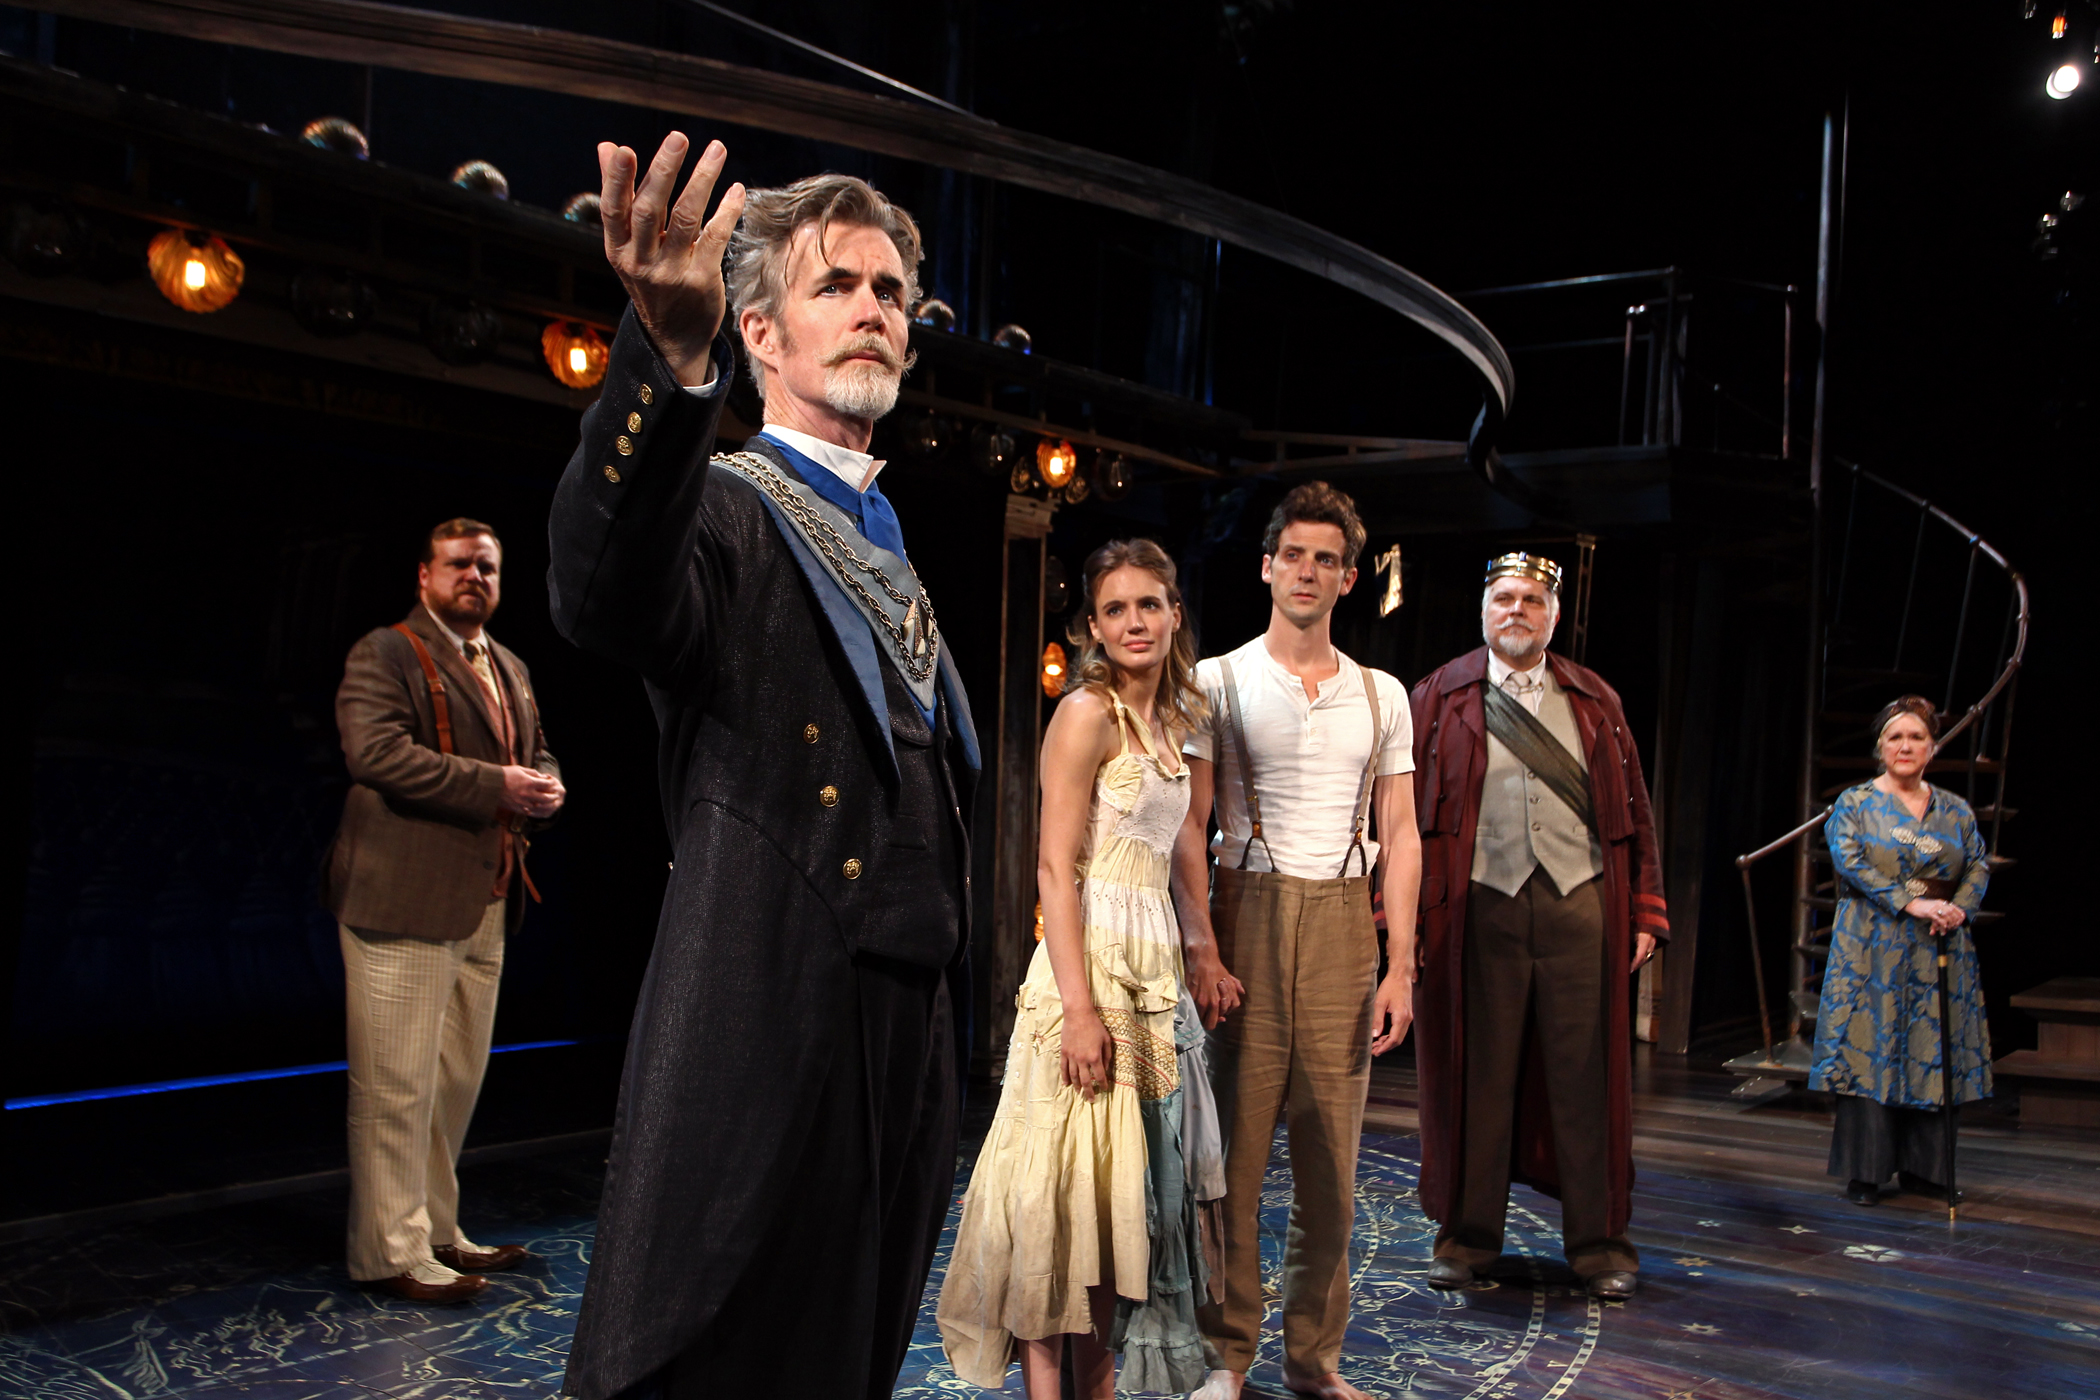 The Tempest at S.C.R.